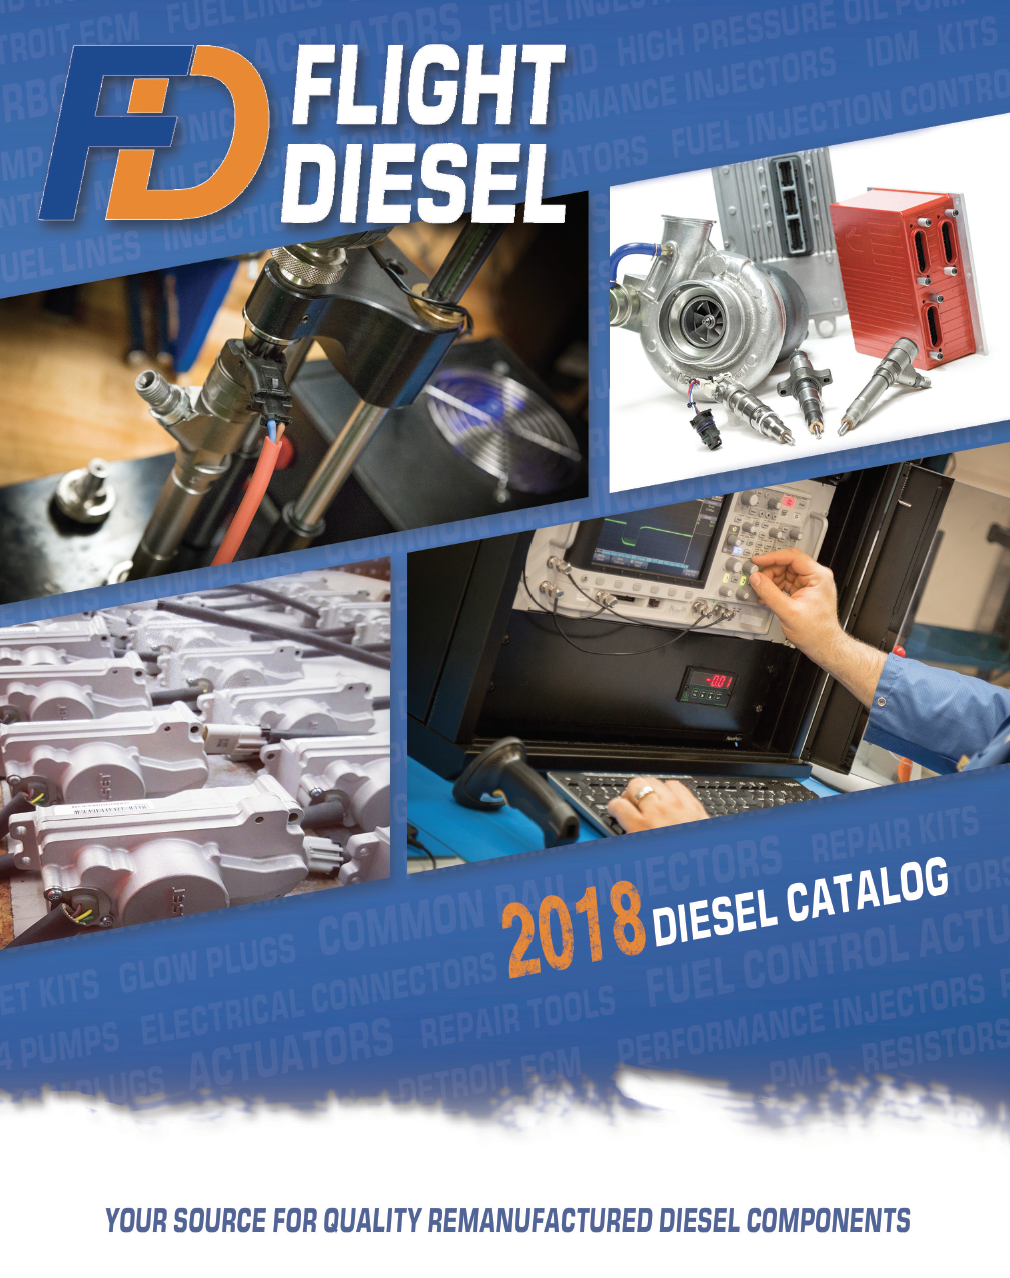 Flight Diesel Product Catalog 2018